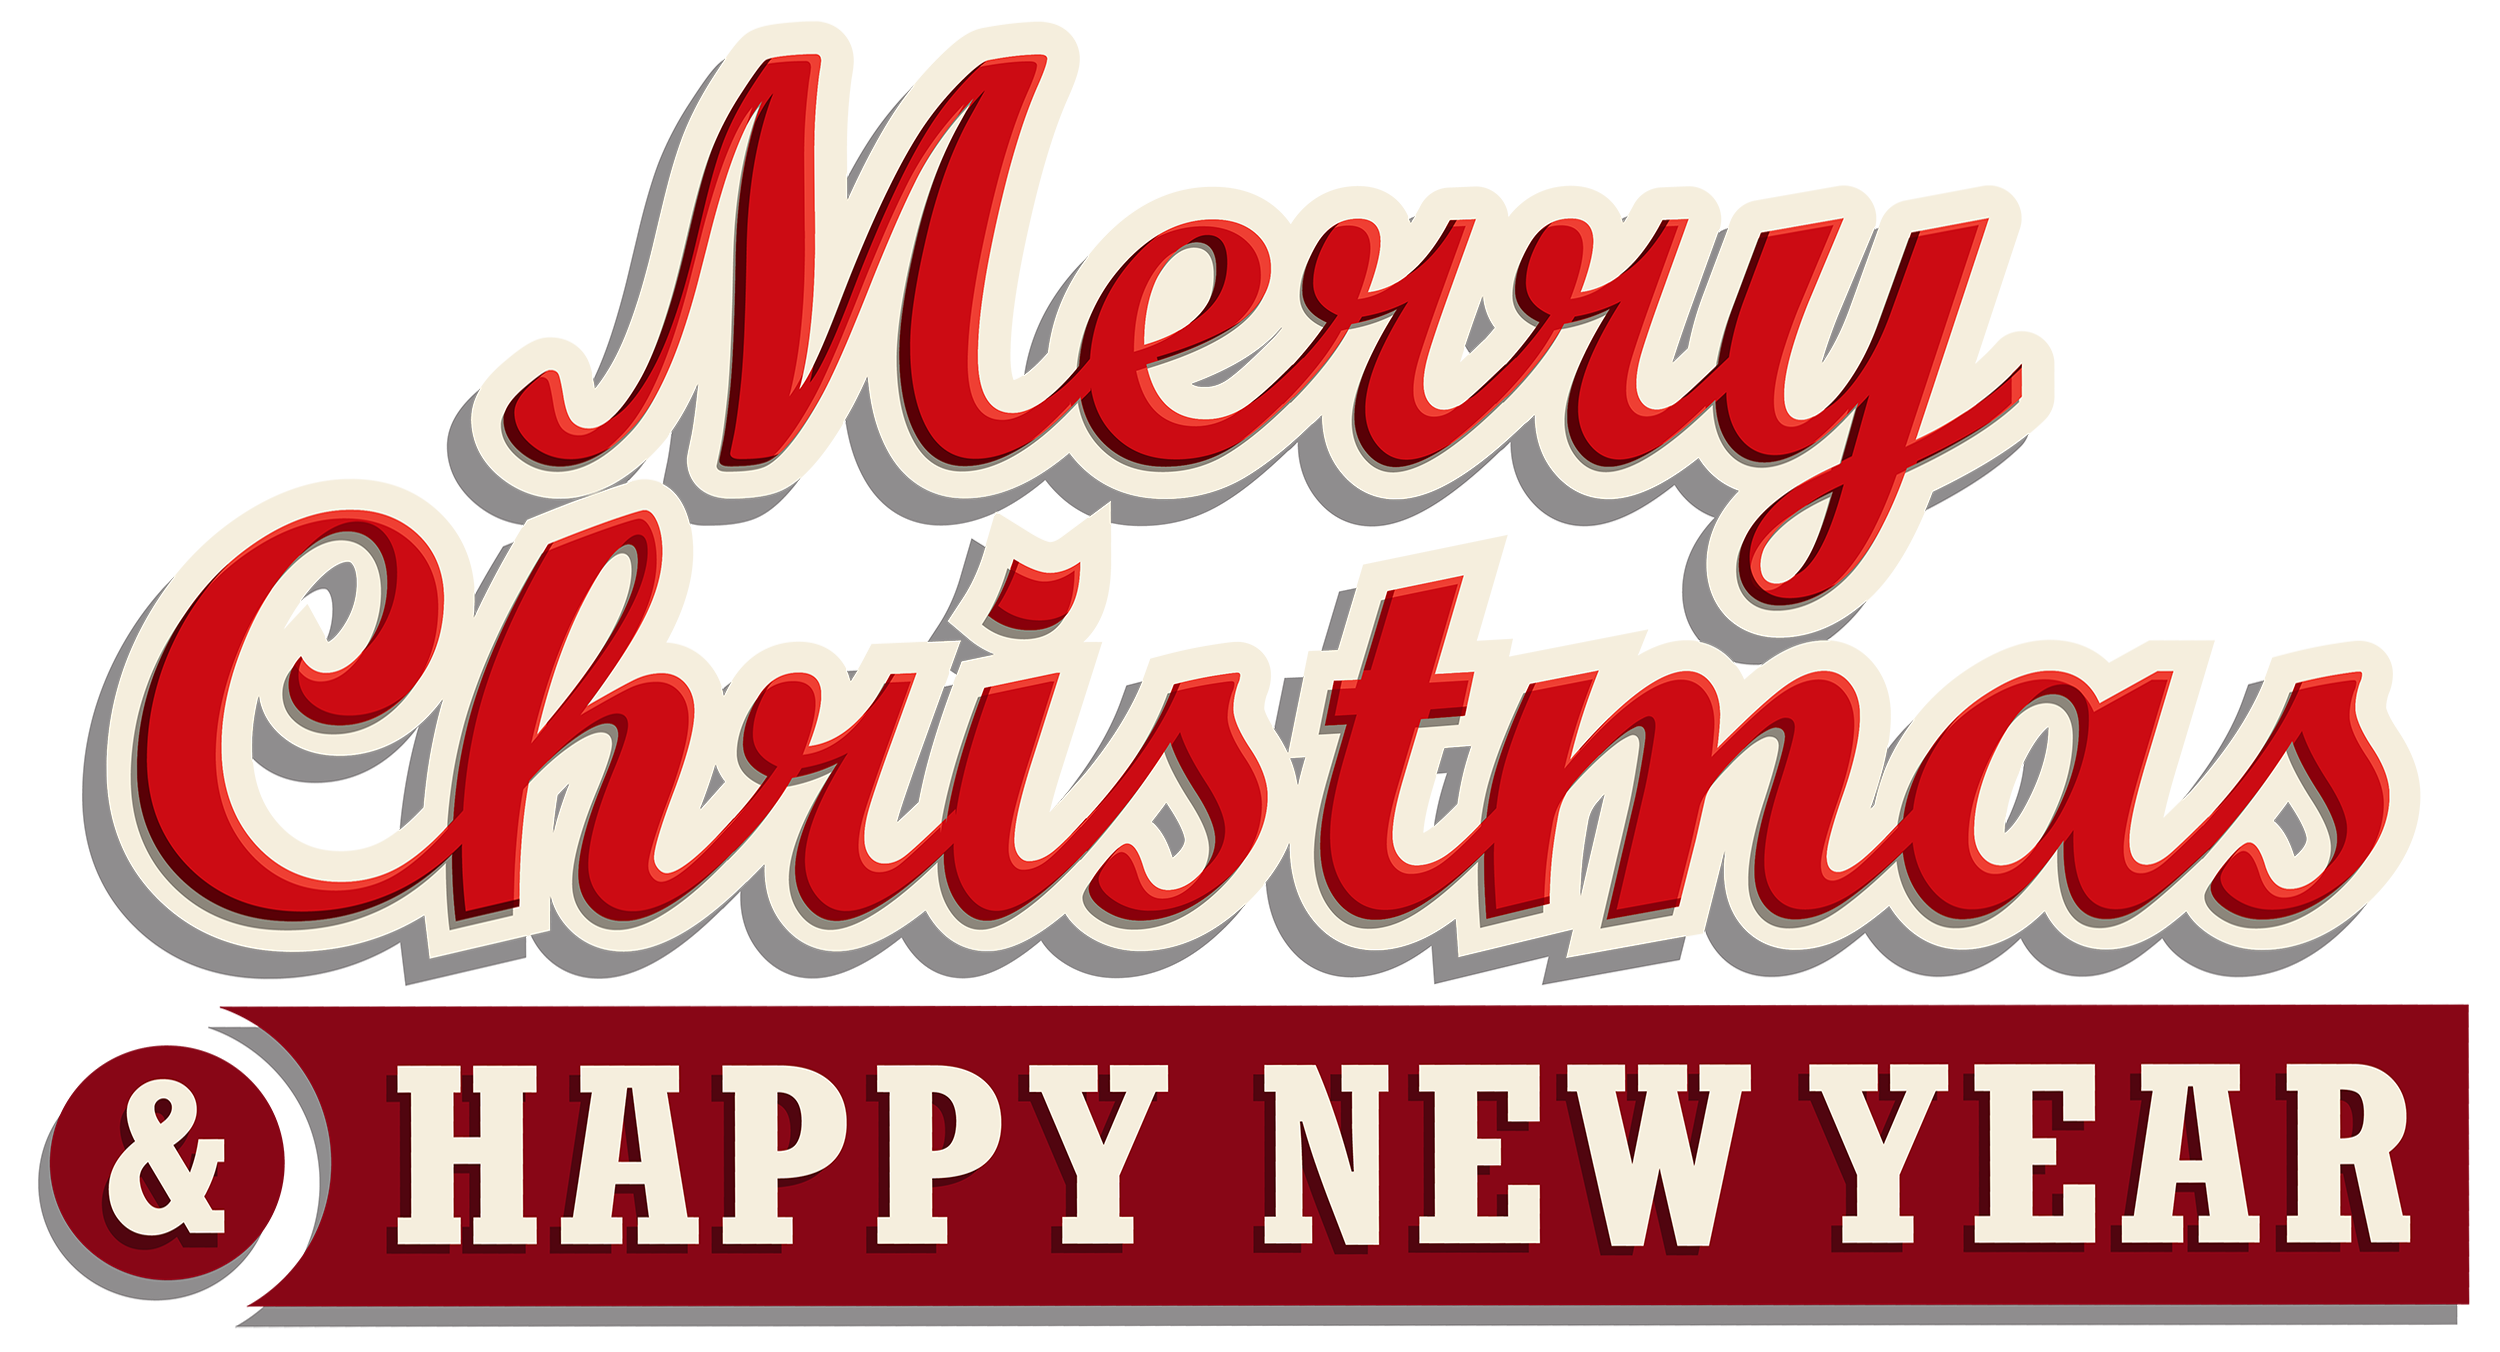 Merry Christmas And Happy New Year Banner Clipart.